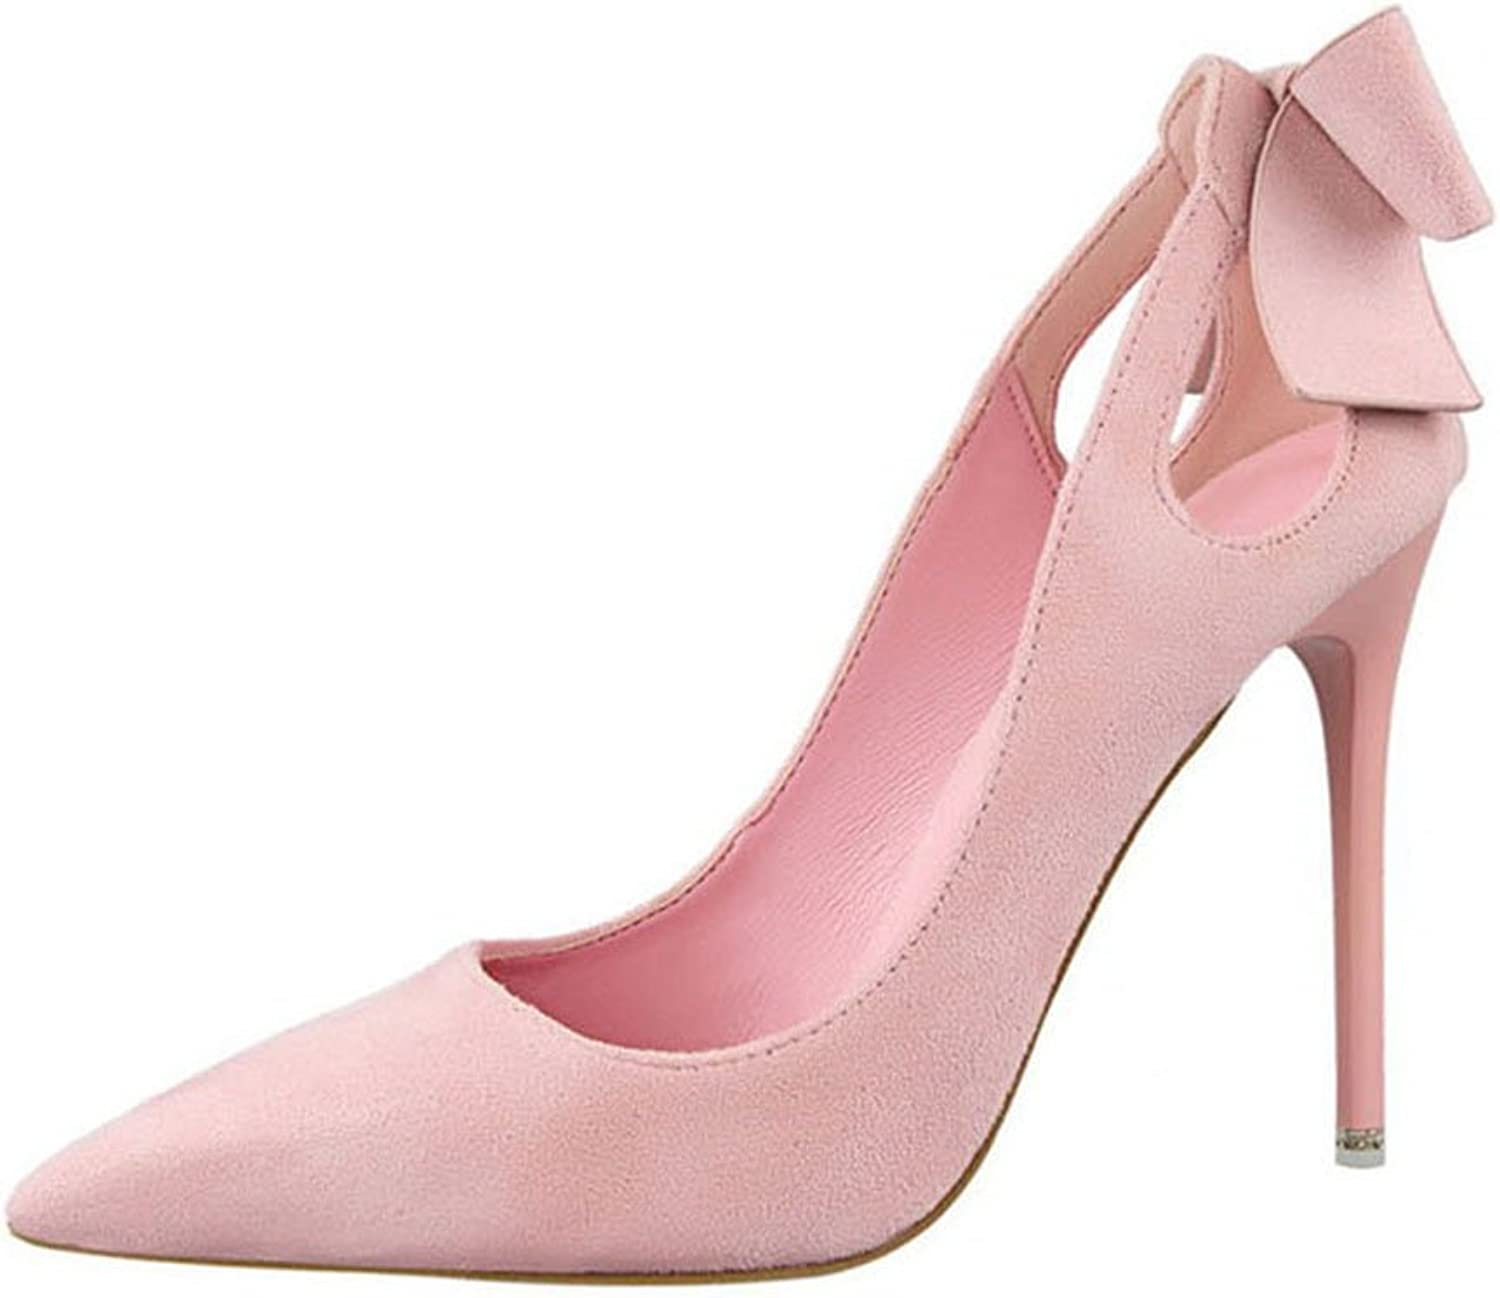 Big Tree 2017 Bowknot Dress shoes Women Pumps Heels Festival Party Wedding Pumps Heels Formal shoes